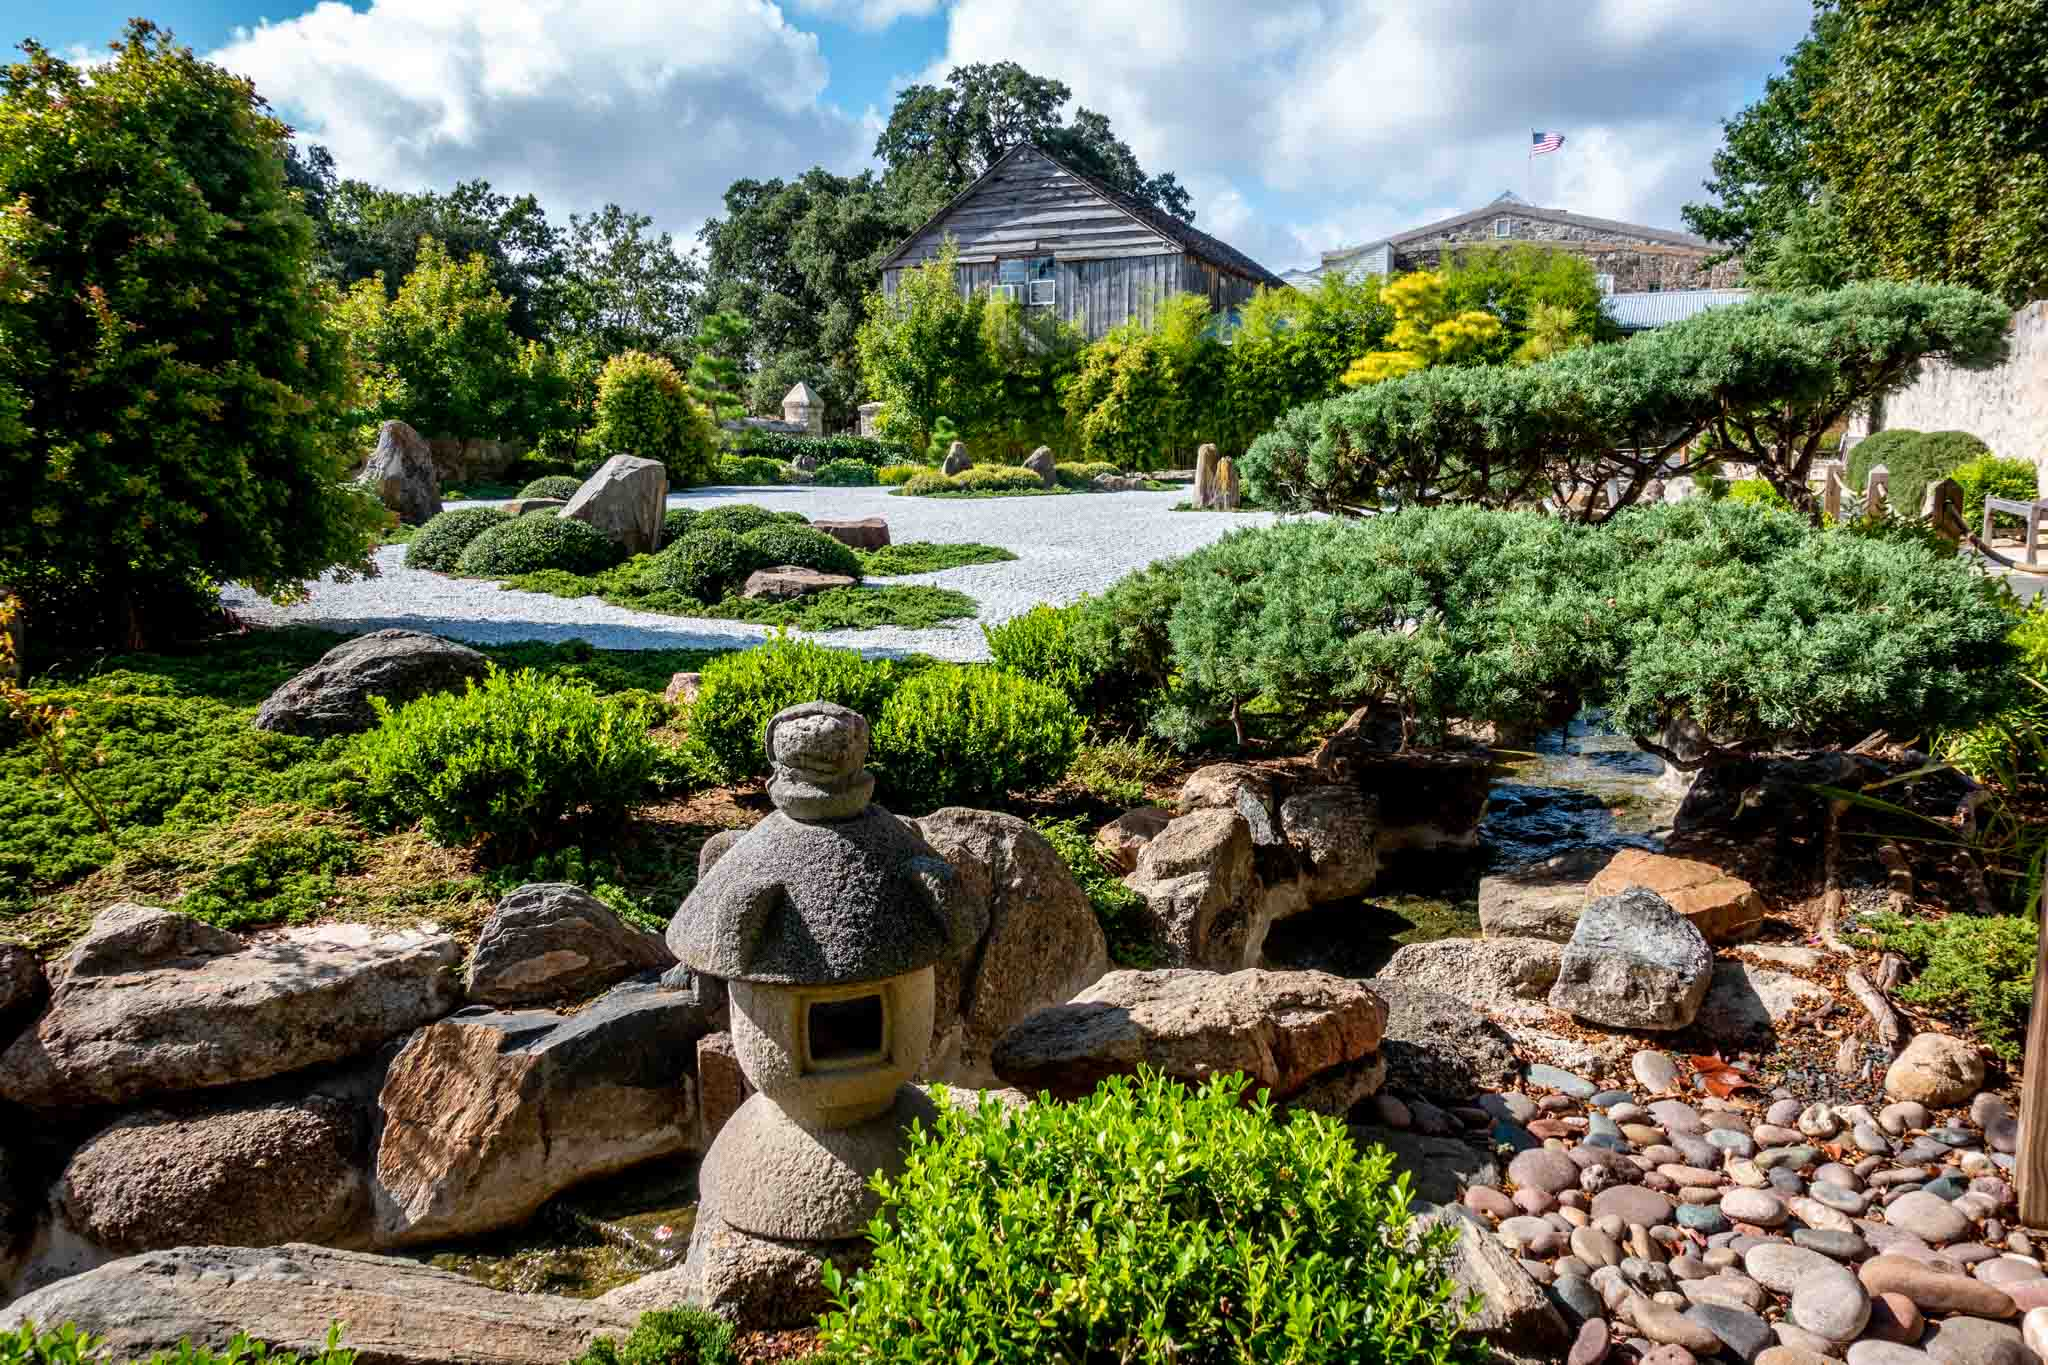 Plants and decorations in the Japanese Garden of Peace